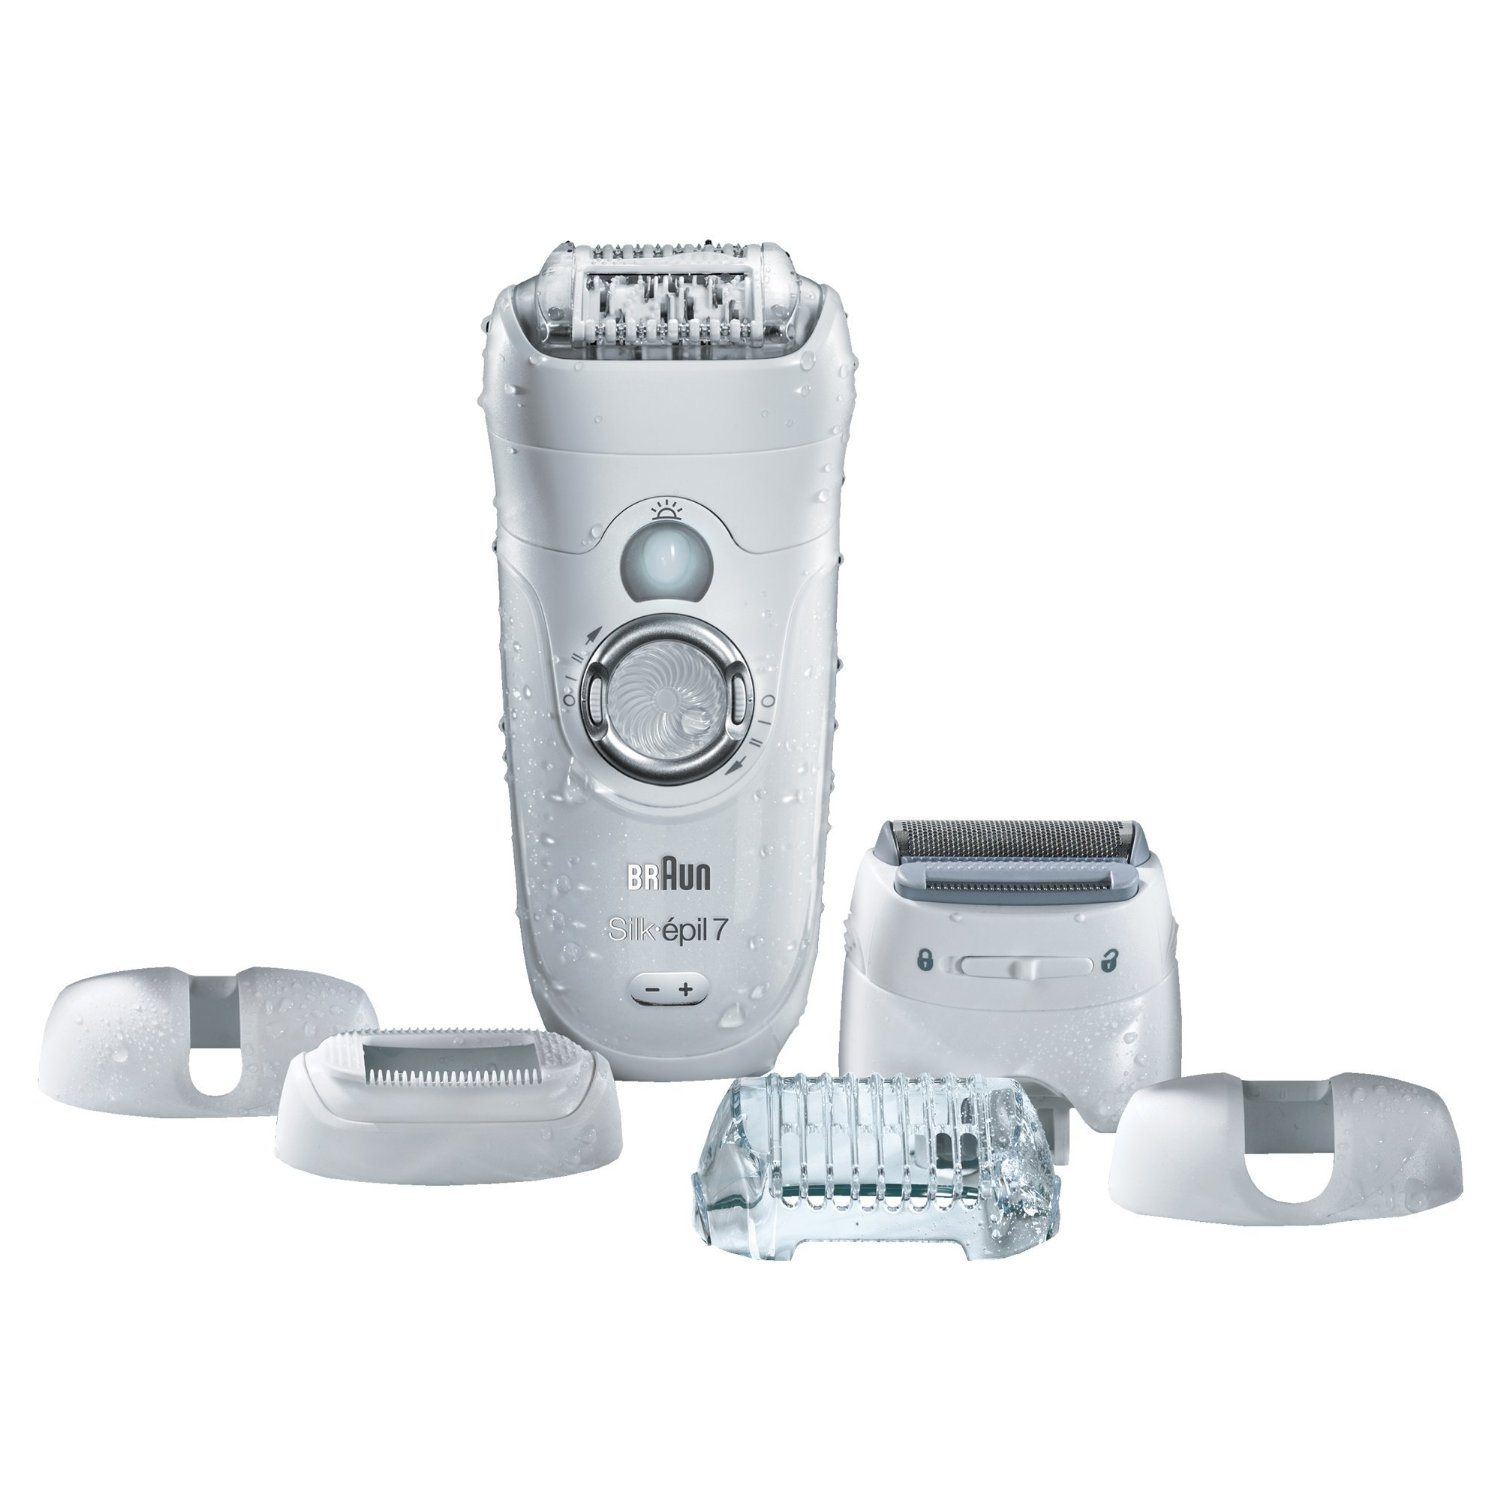 braun-silk-epil-ls5160wd-lady-shaver-wet-dry-cordless-electric-hair-removal-razor-and-bikini-trimmer-for-women